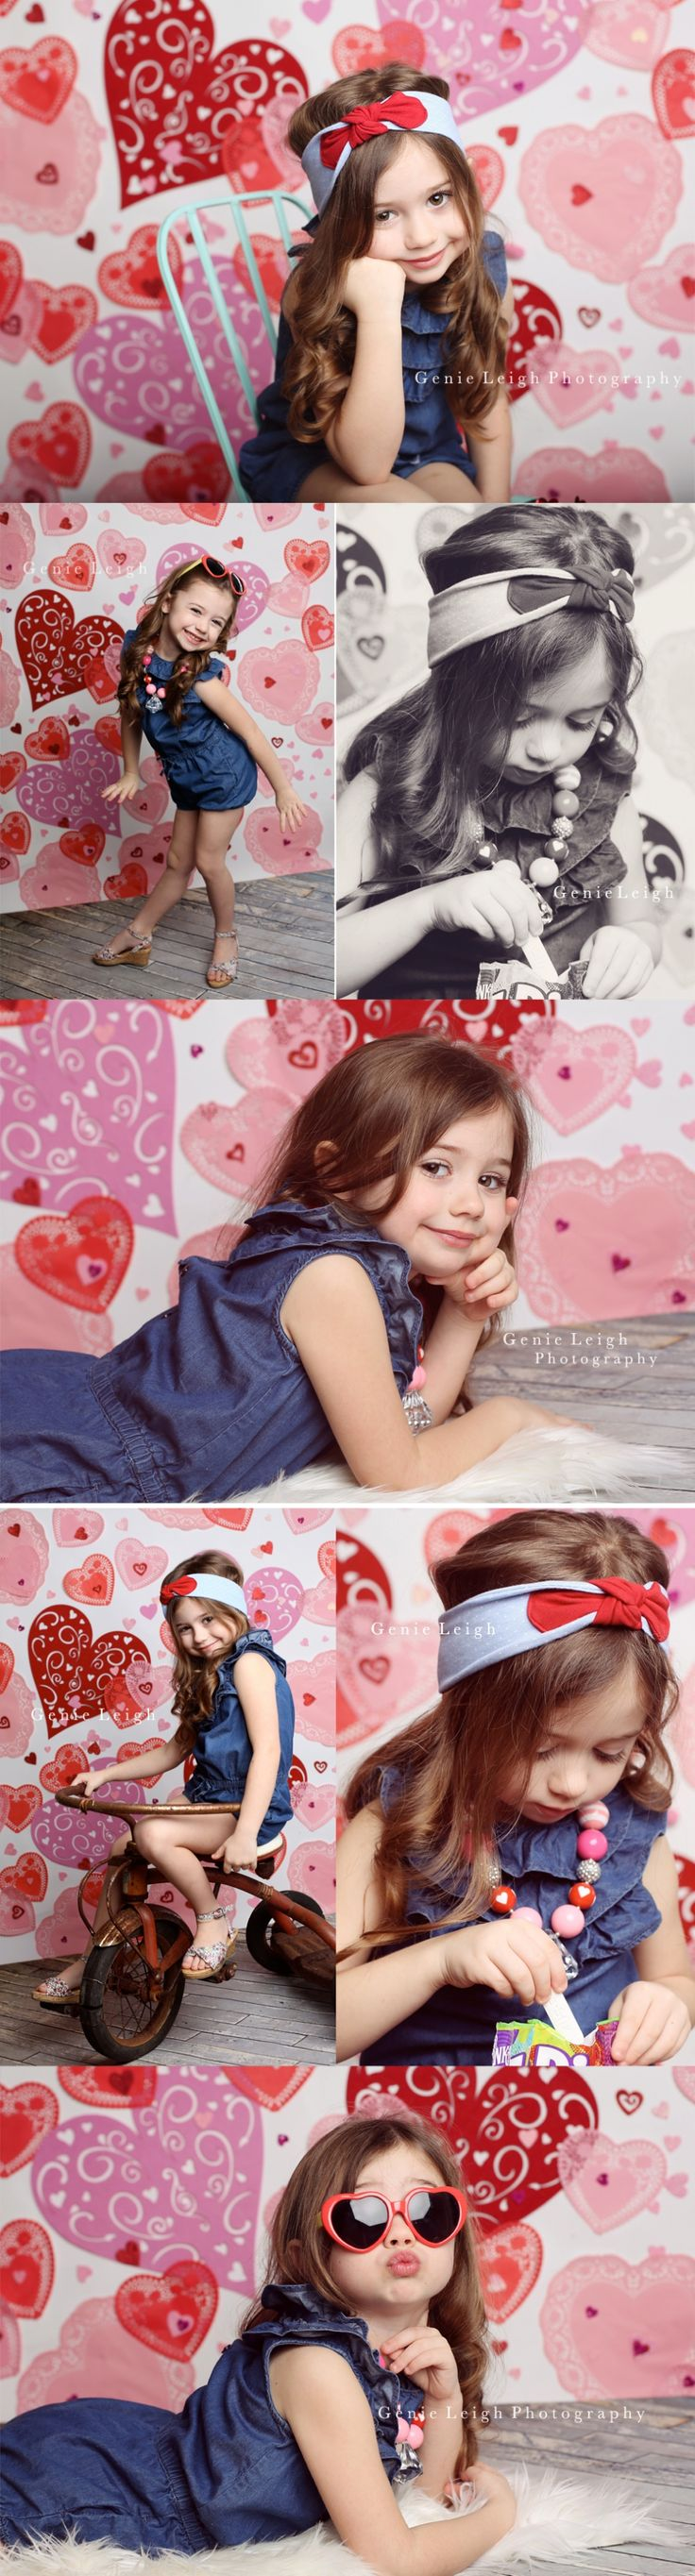 Be My Valentines  Genie Leigh Photography Valentines Day Backdrop Heart Dollies